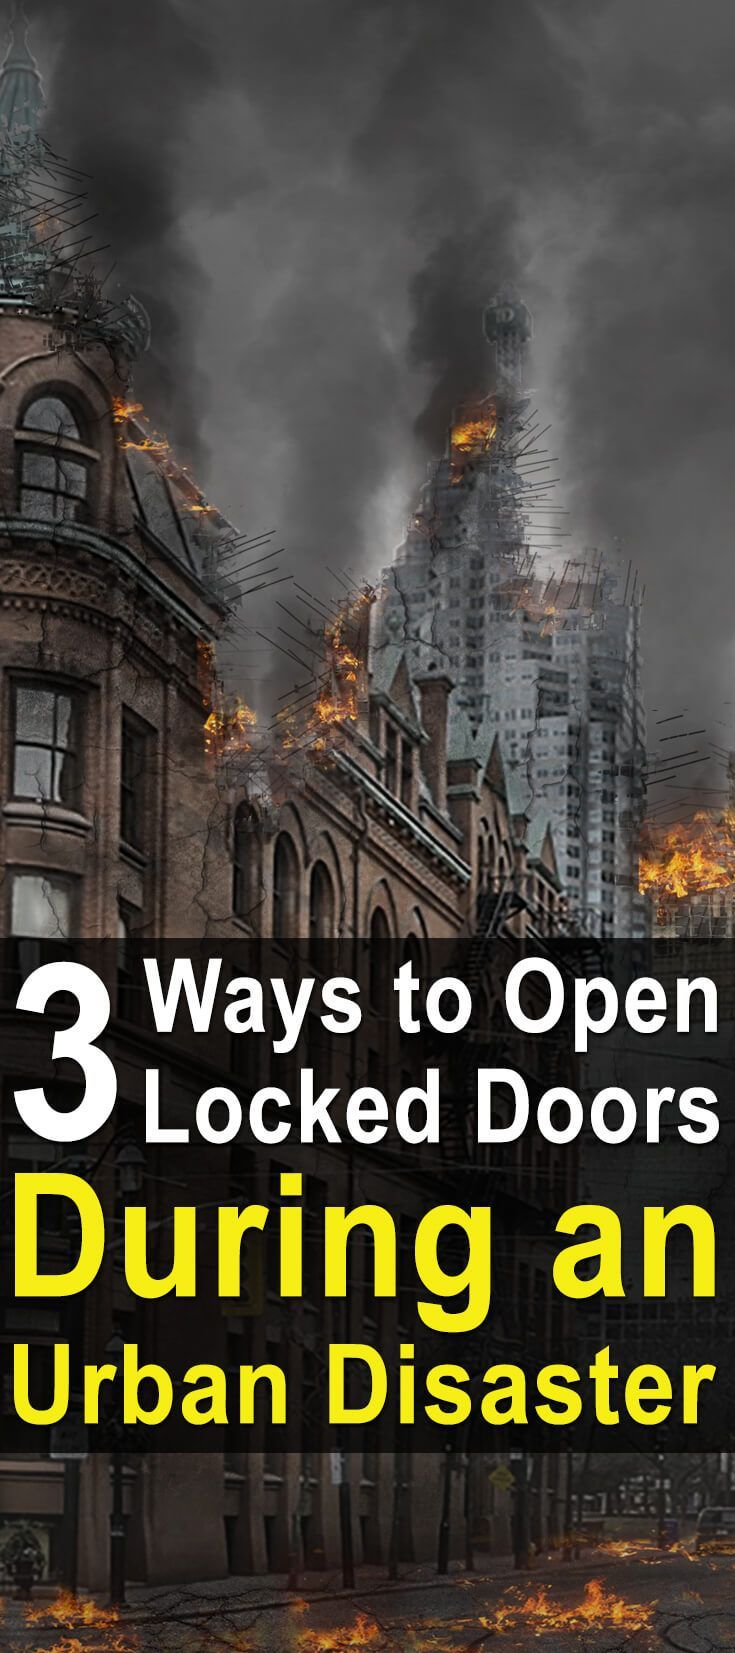 3 Ways to Open Locked Doors During an Urban Disaster. You might be surprised at just how often the skill of unlocking doors can come in handy once you have it. | Posted by: SurvivalofthePrepped.com